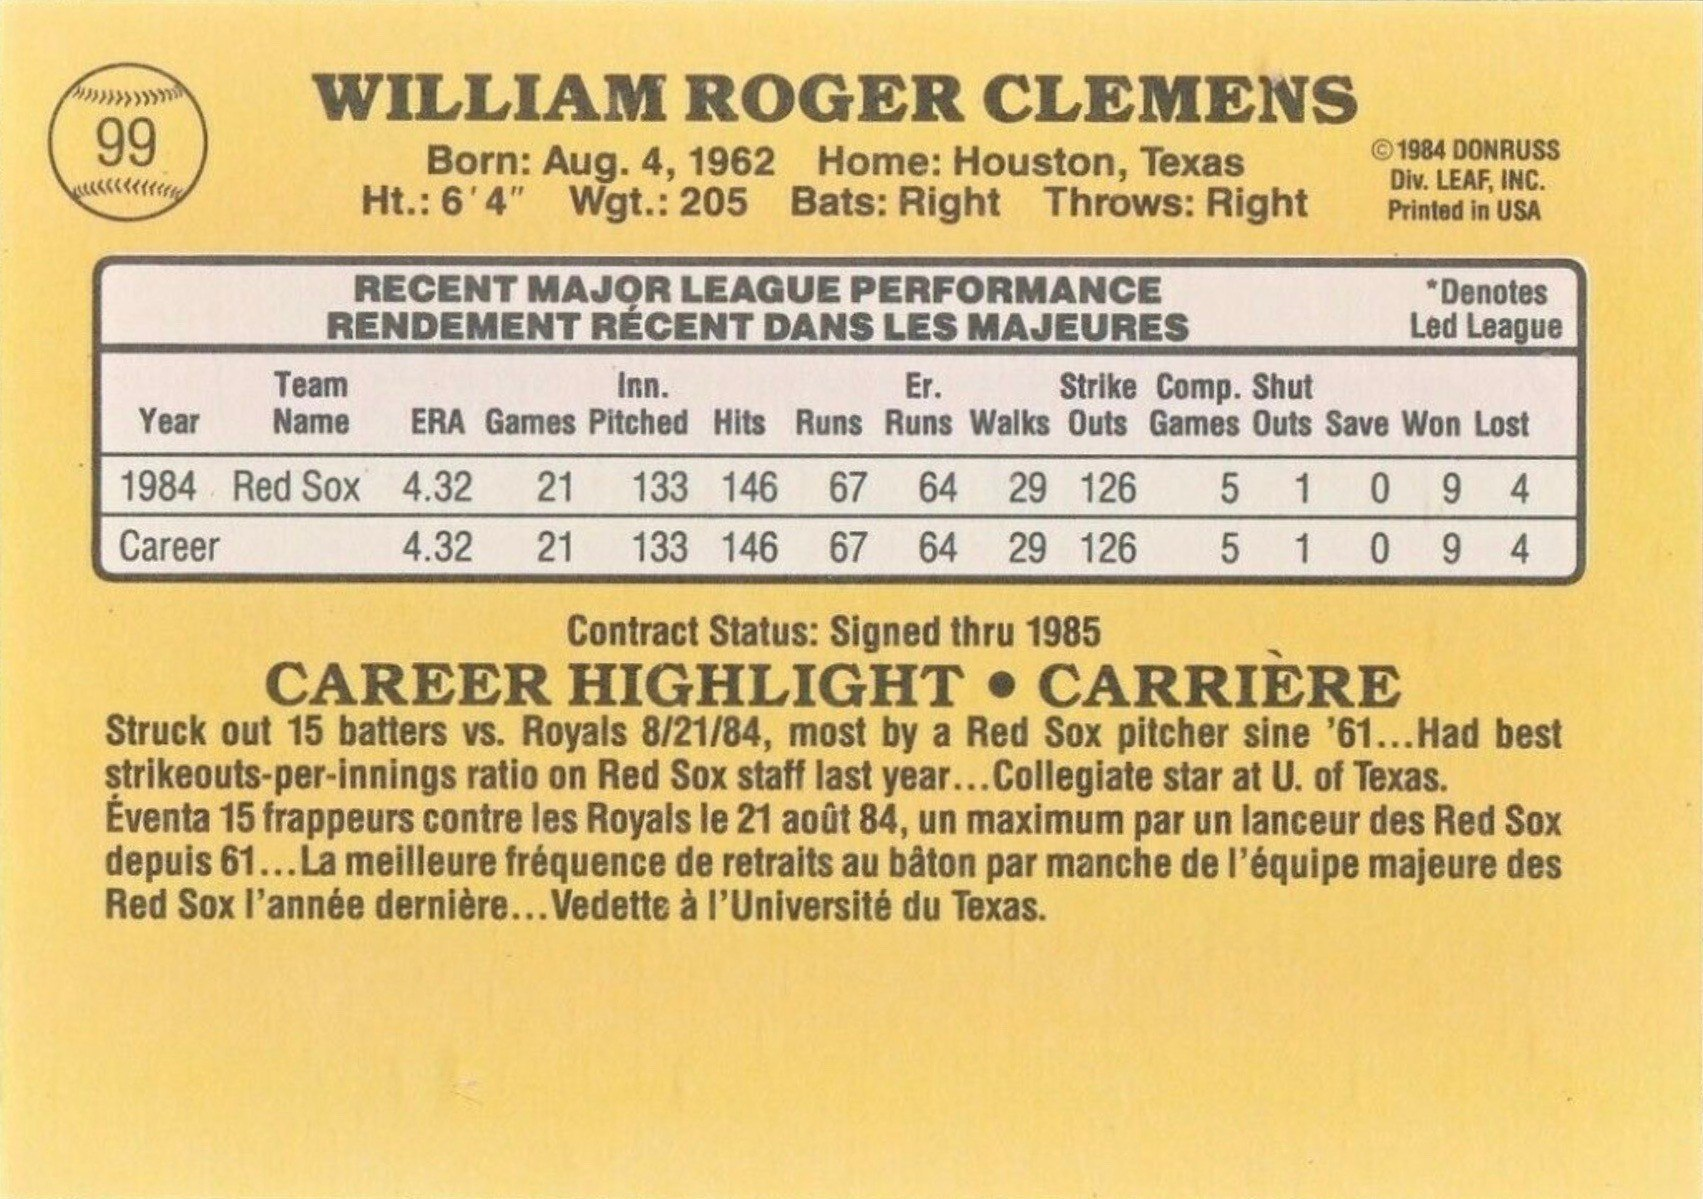 1985 Leaf #99 Roger Clemens Baseball Card Reverse Side With Statistics and Biography